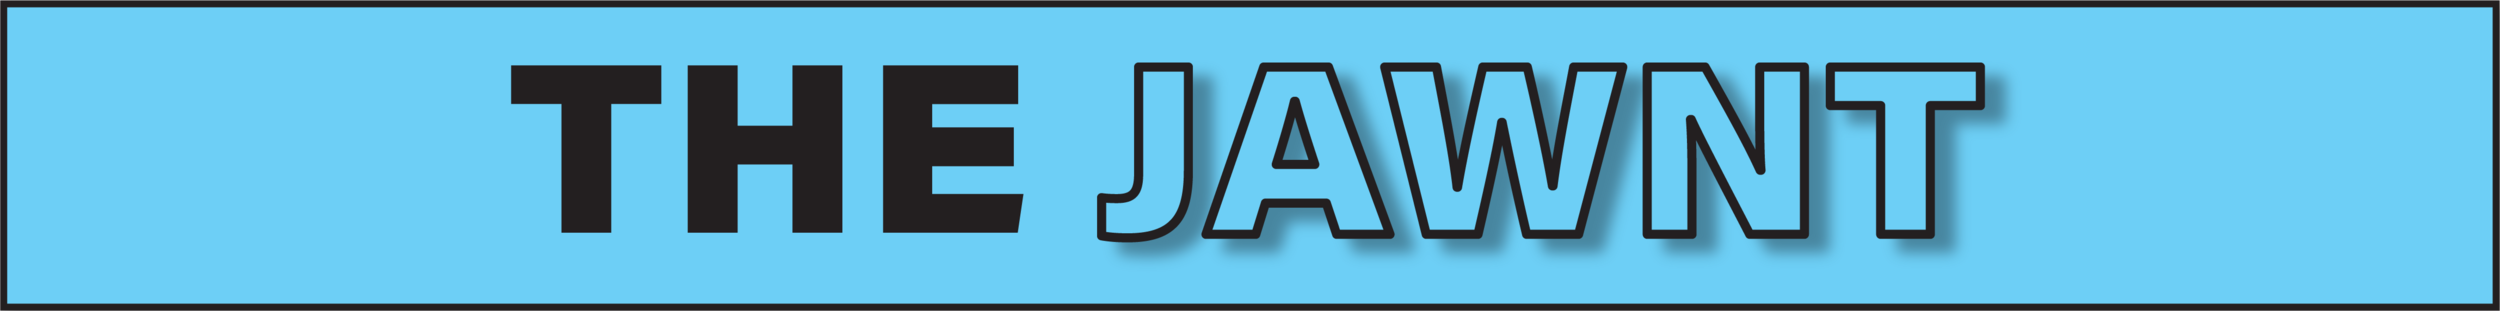 Jawnt.png